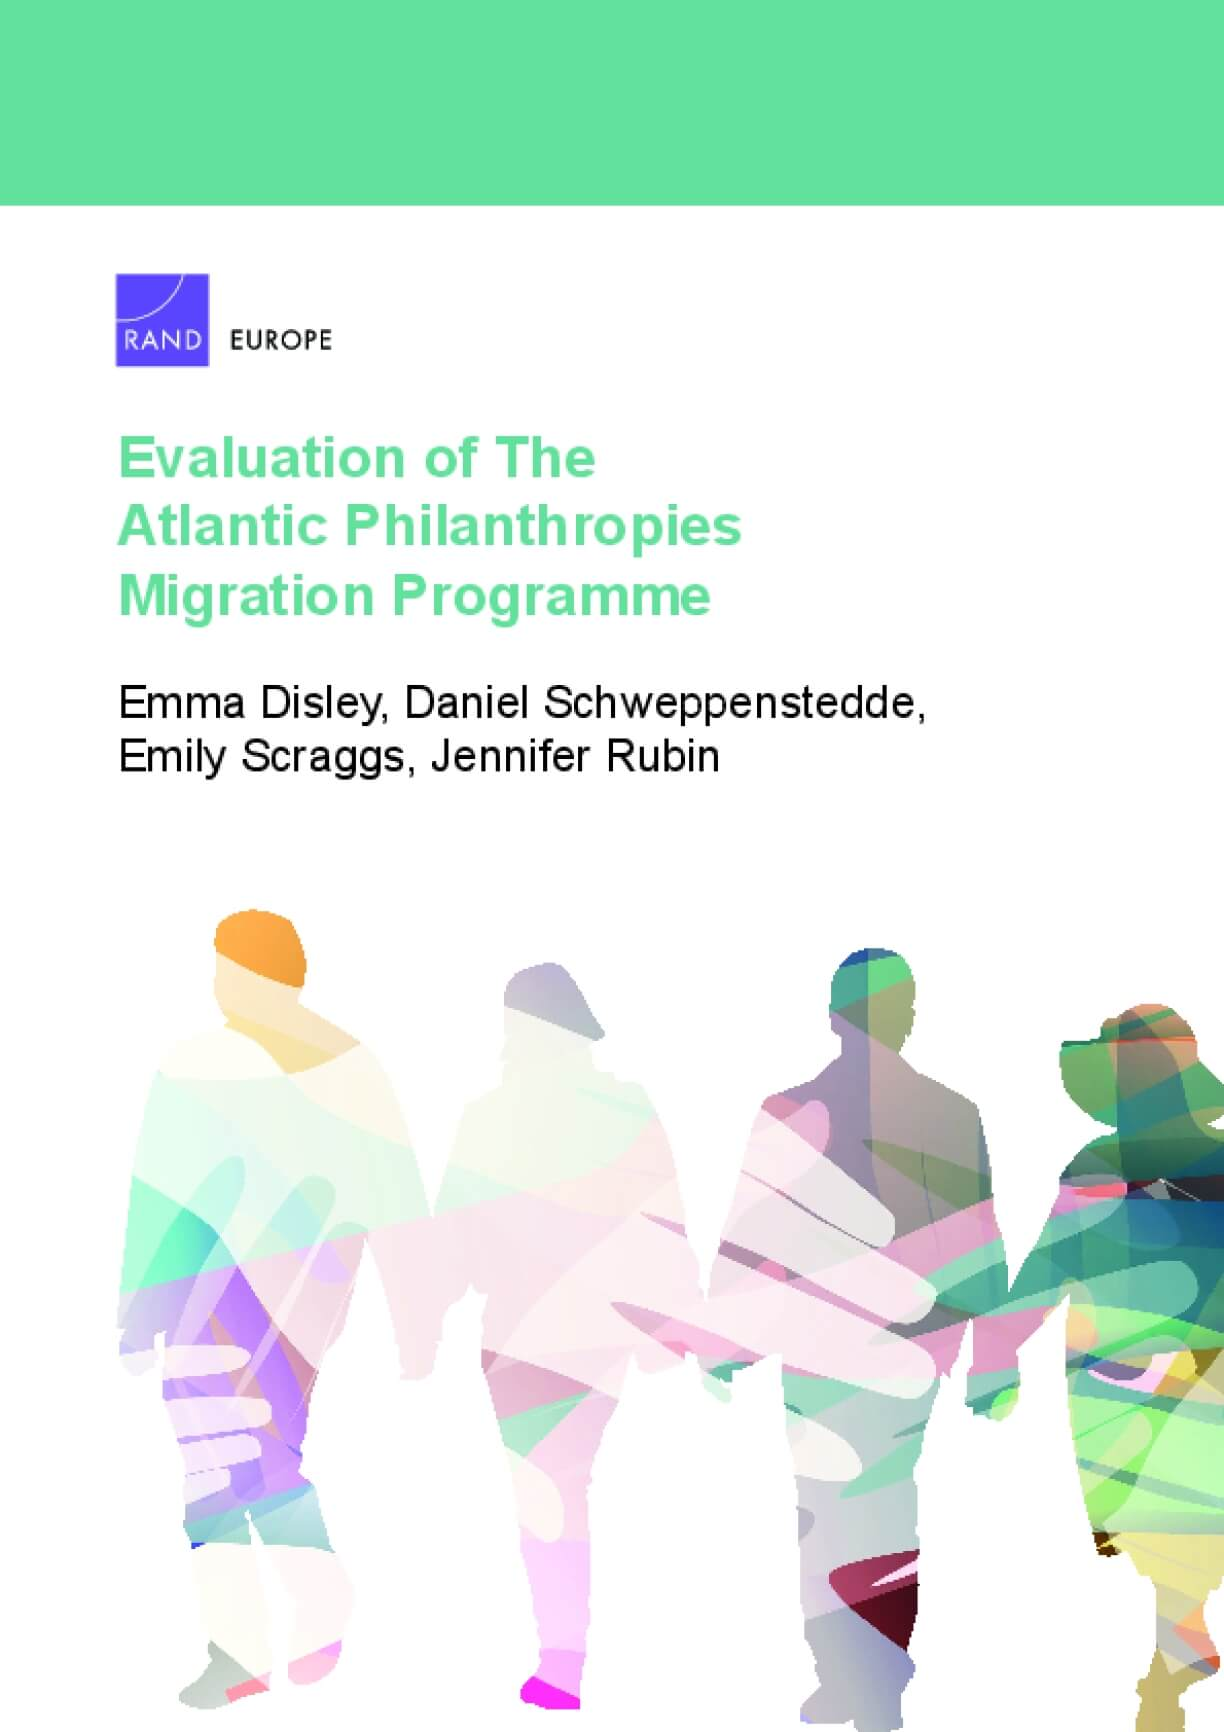 Evaluation of The Atlantic Philanthropies Migration Programme